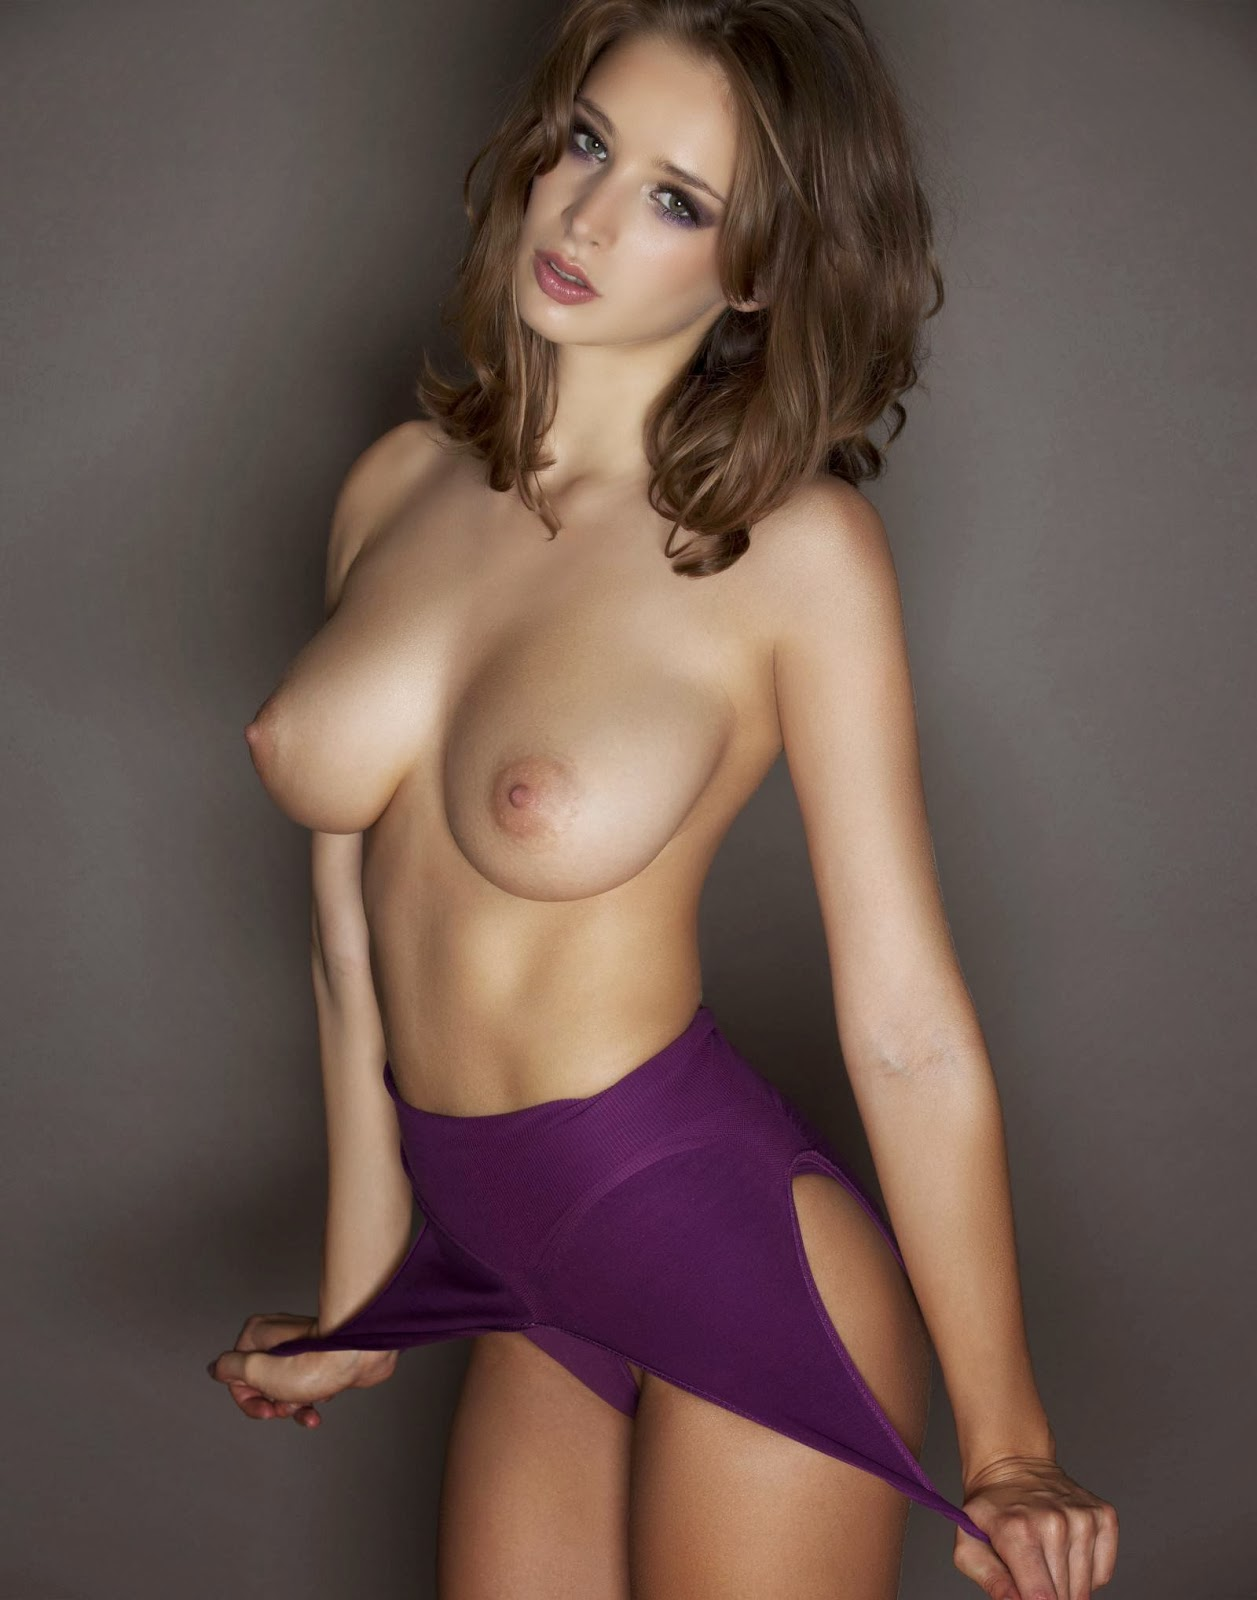 Emily shaw nude in playboy